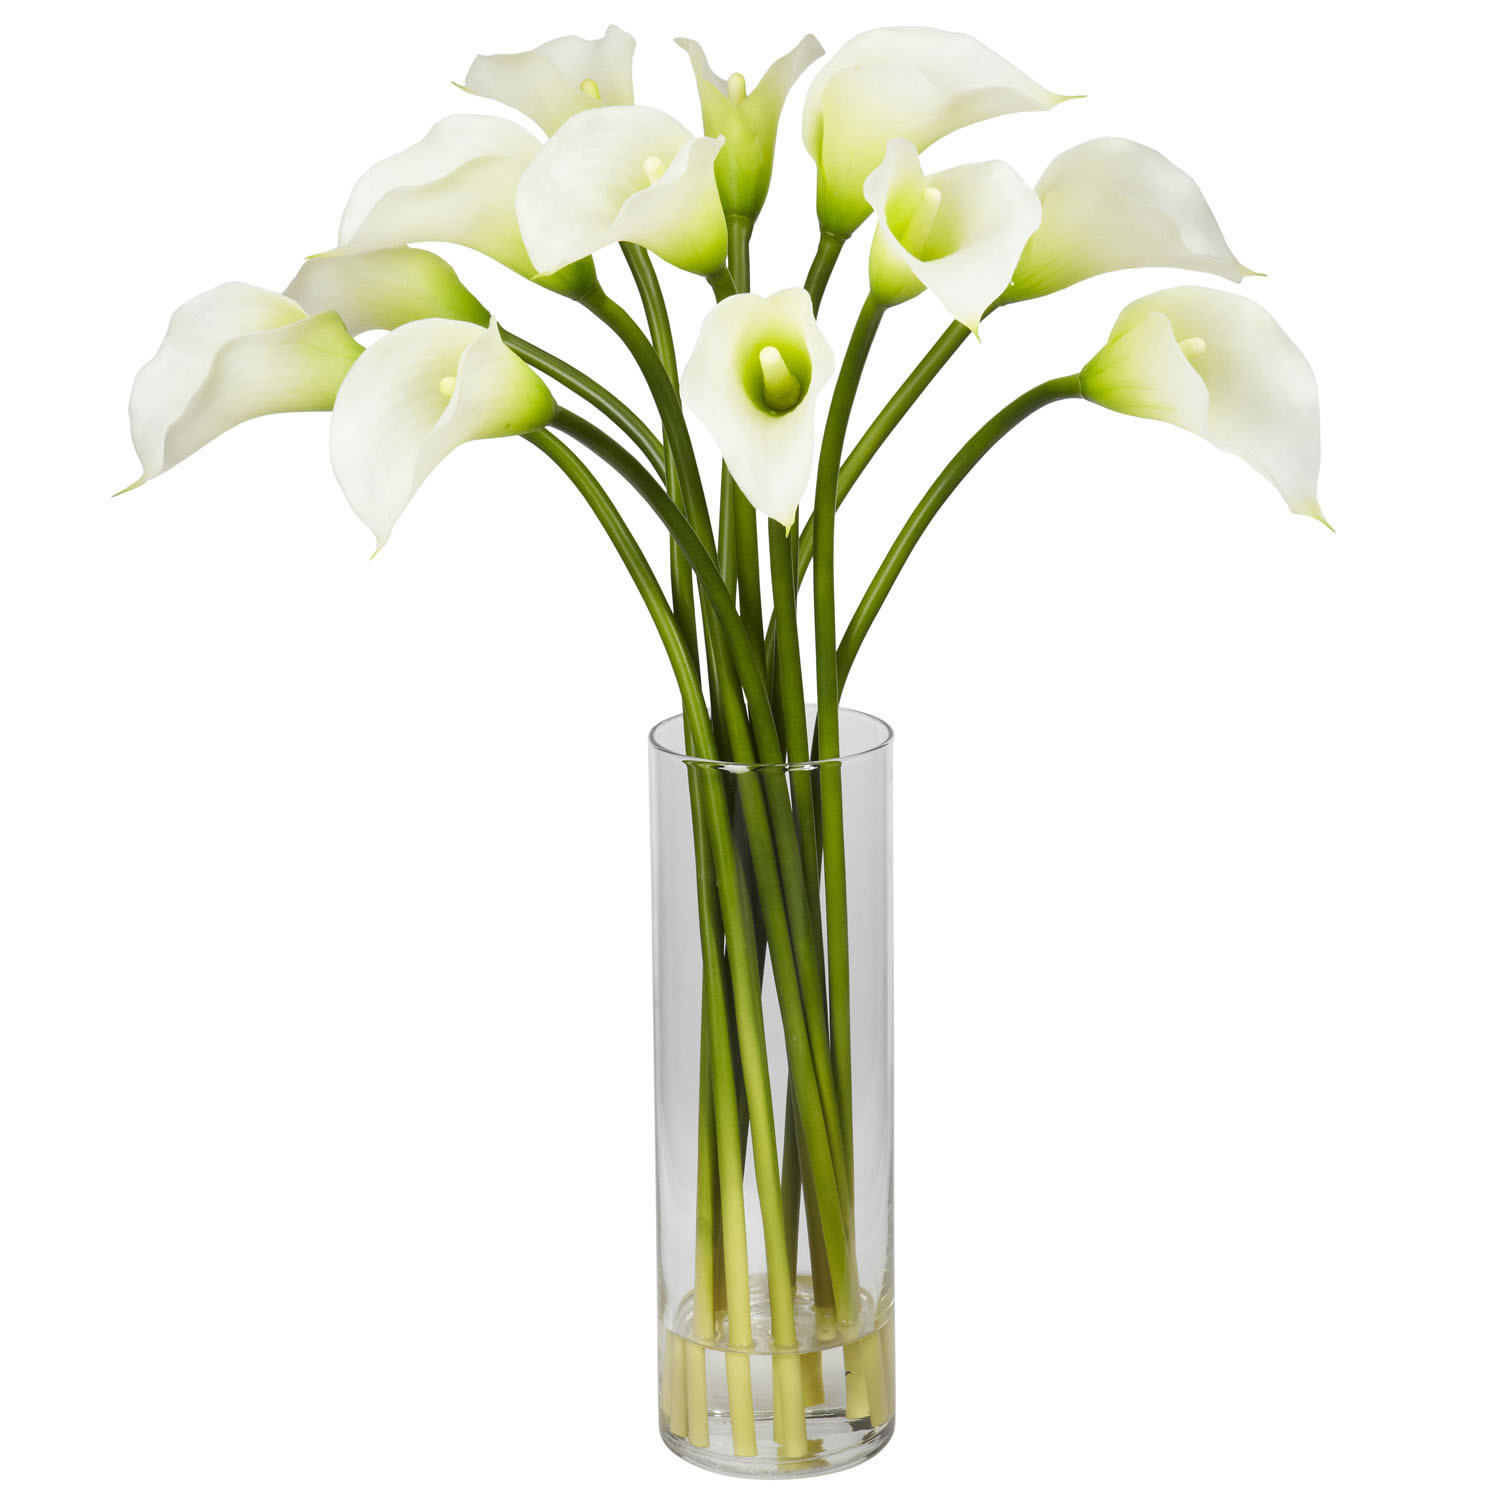 small glass vases amazon of decorme decorme silk flowers decorme with regard to nea2169 zm 1